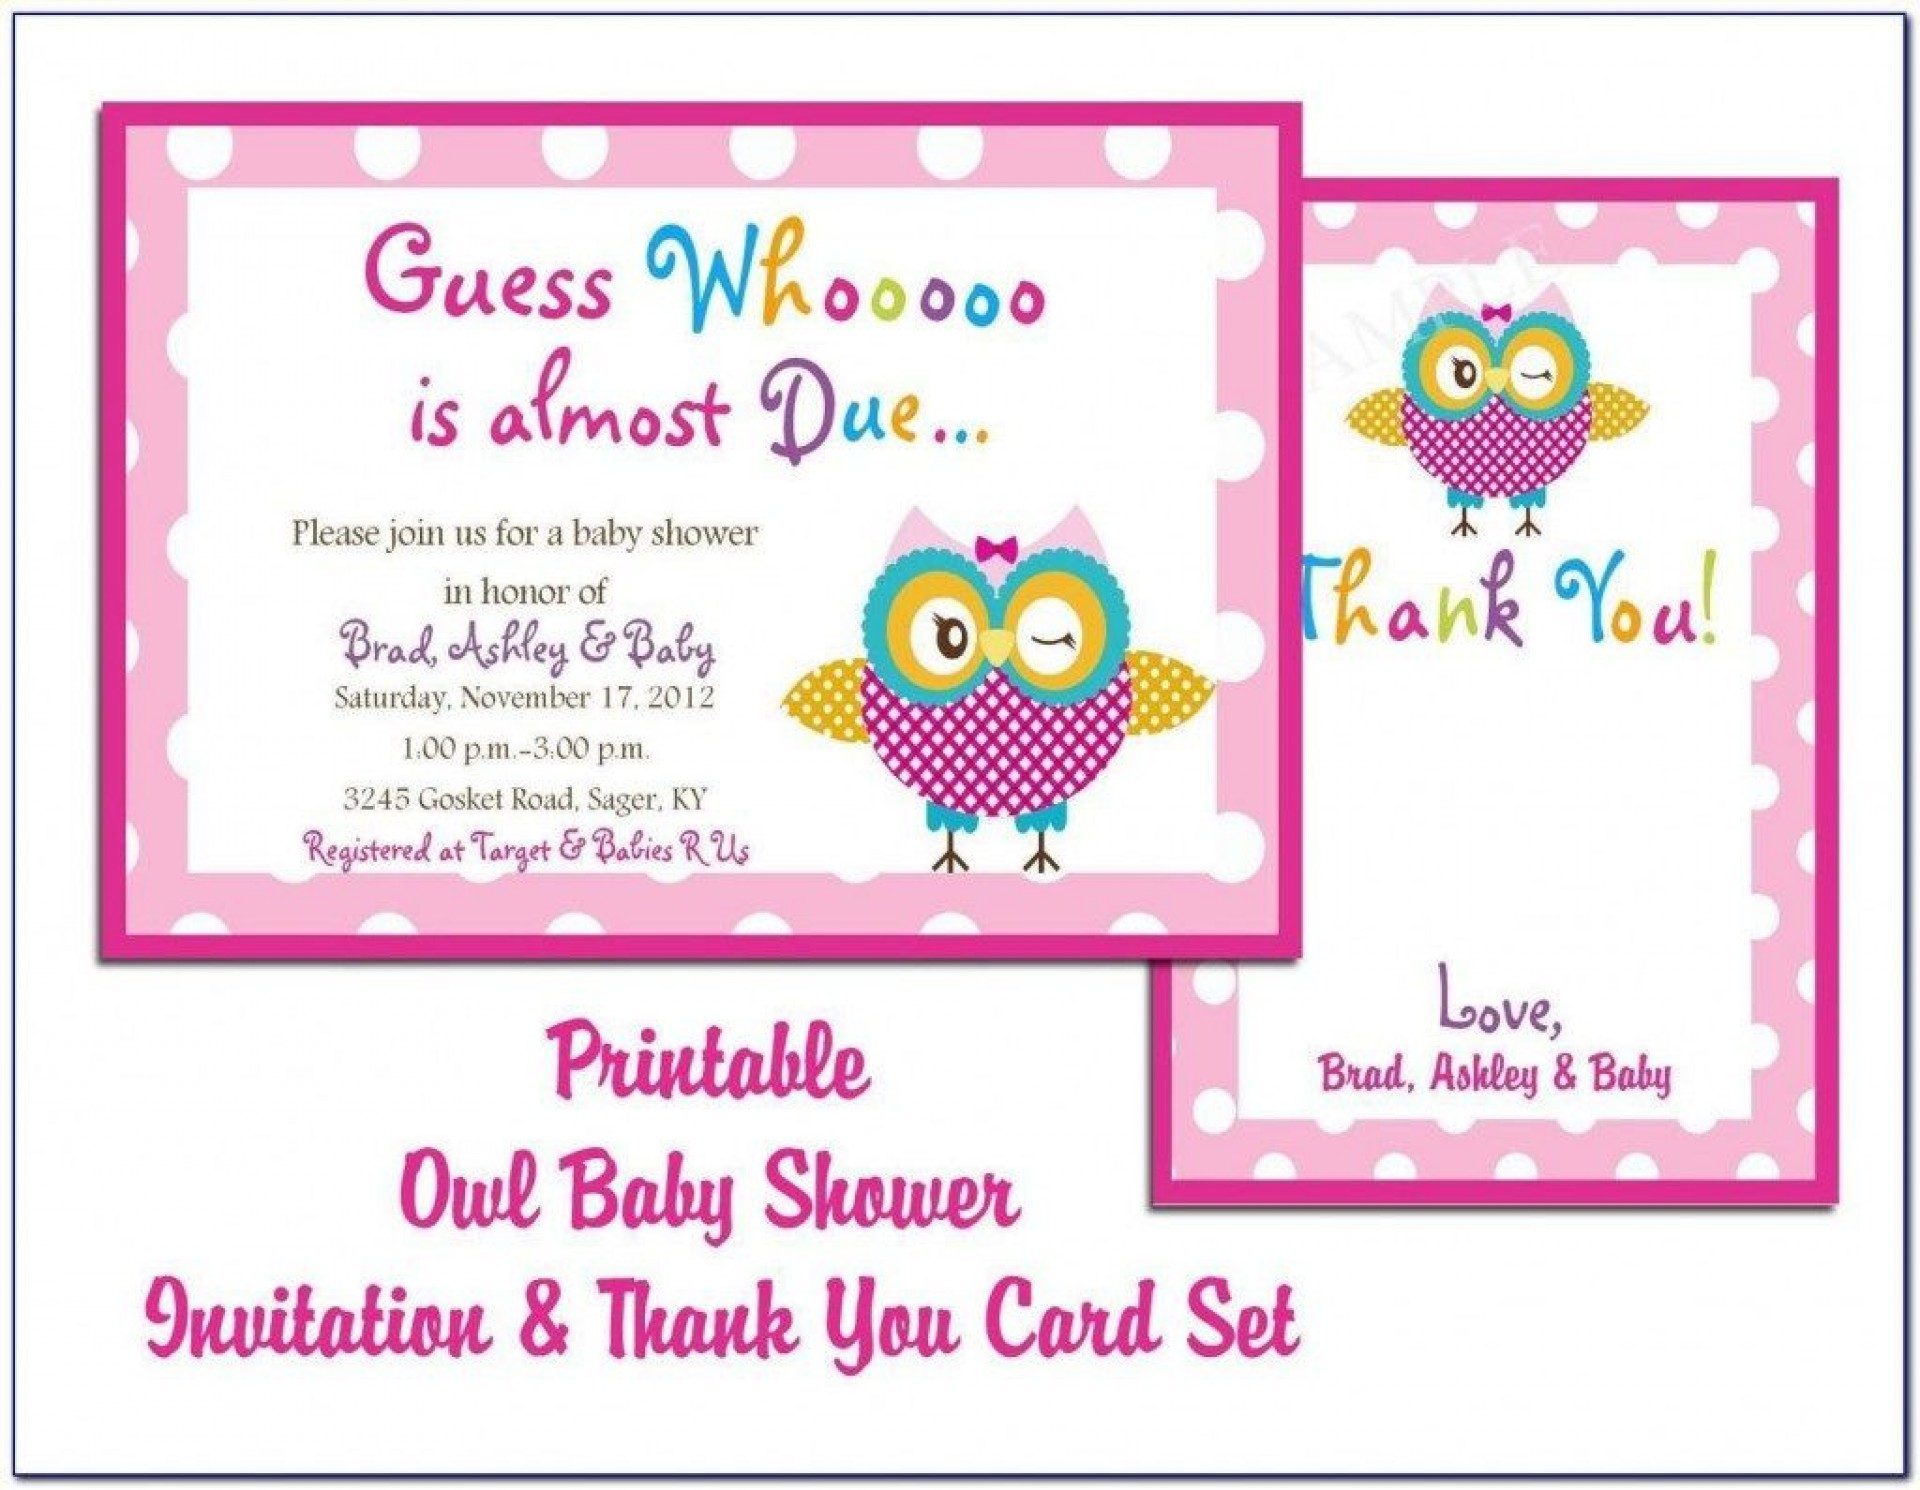 009 Archaicawful Microsoft Word Invitation Template Baby Shower Example  Free Editable Invite1920